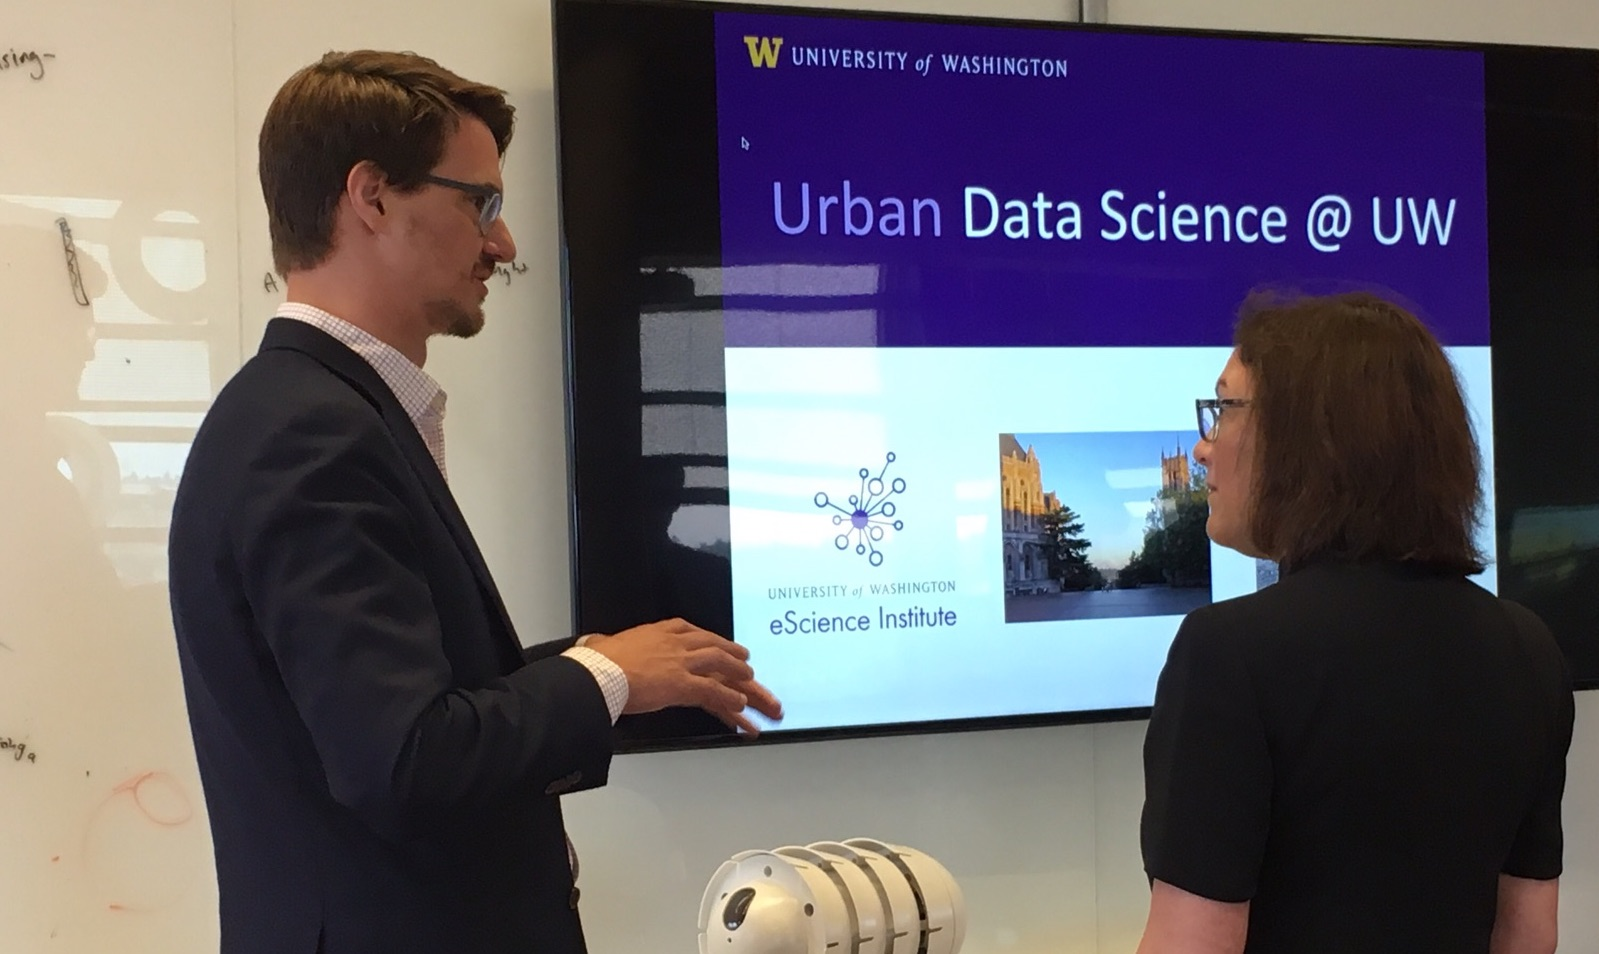 Rep. Suzan DelBene (D-WA-1) met with technology experts at the University of Washington to learn more about how technology could be used to make smart cities.